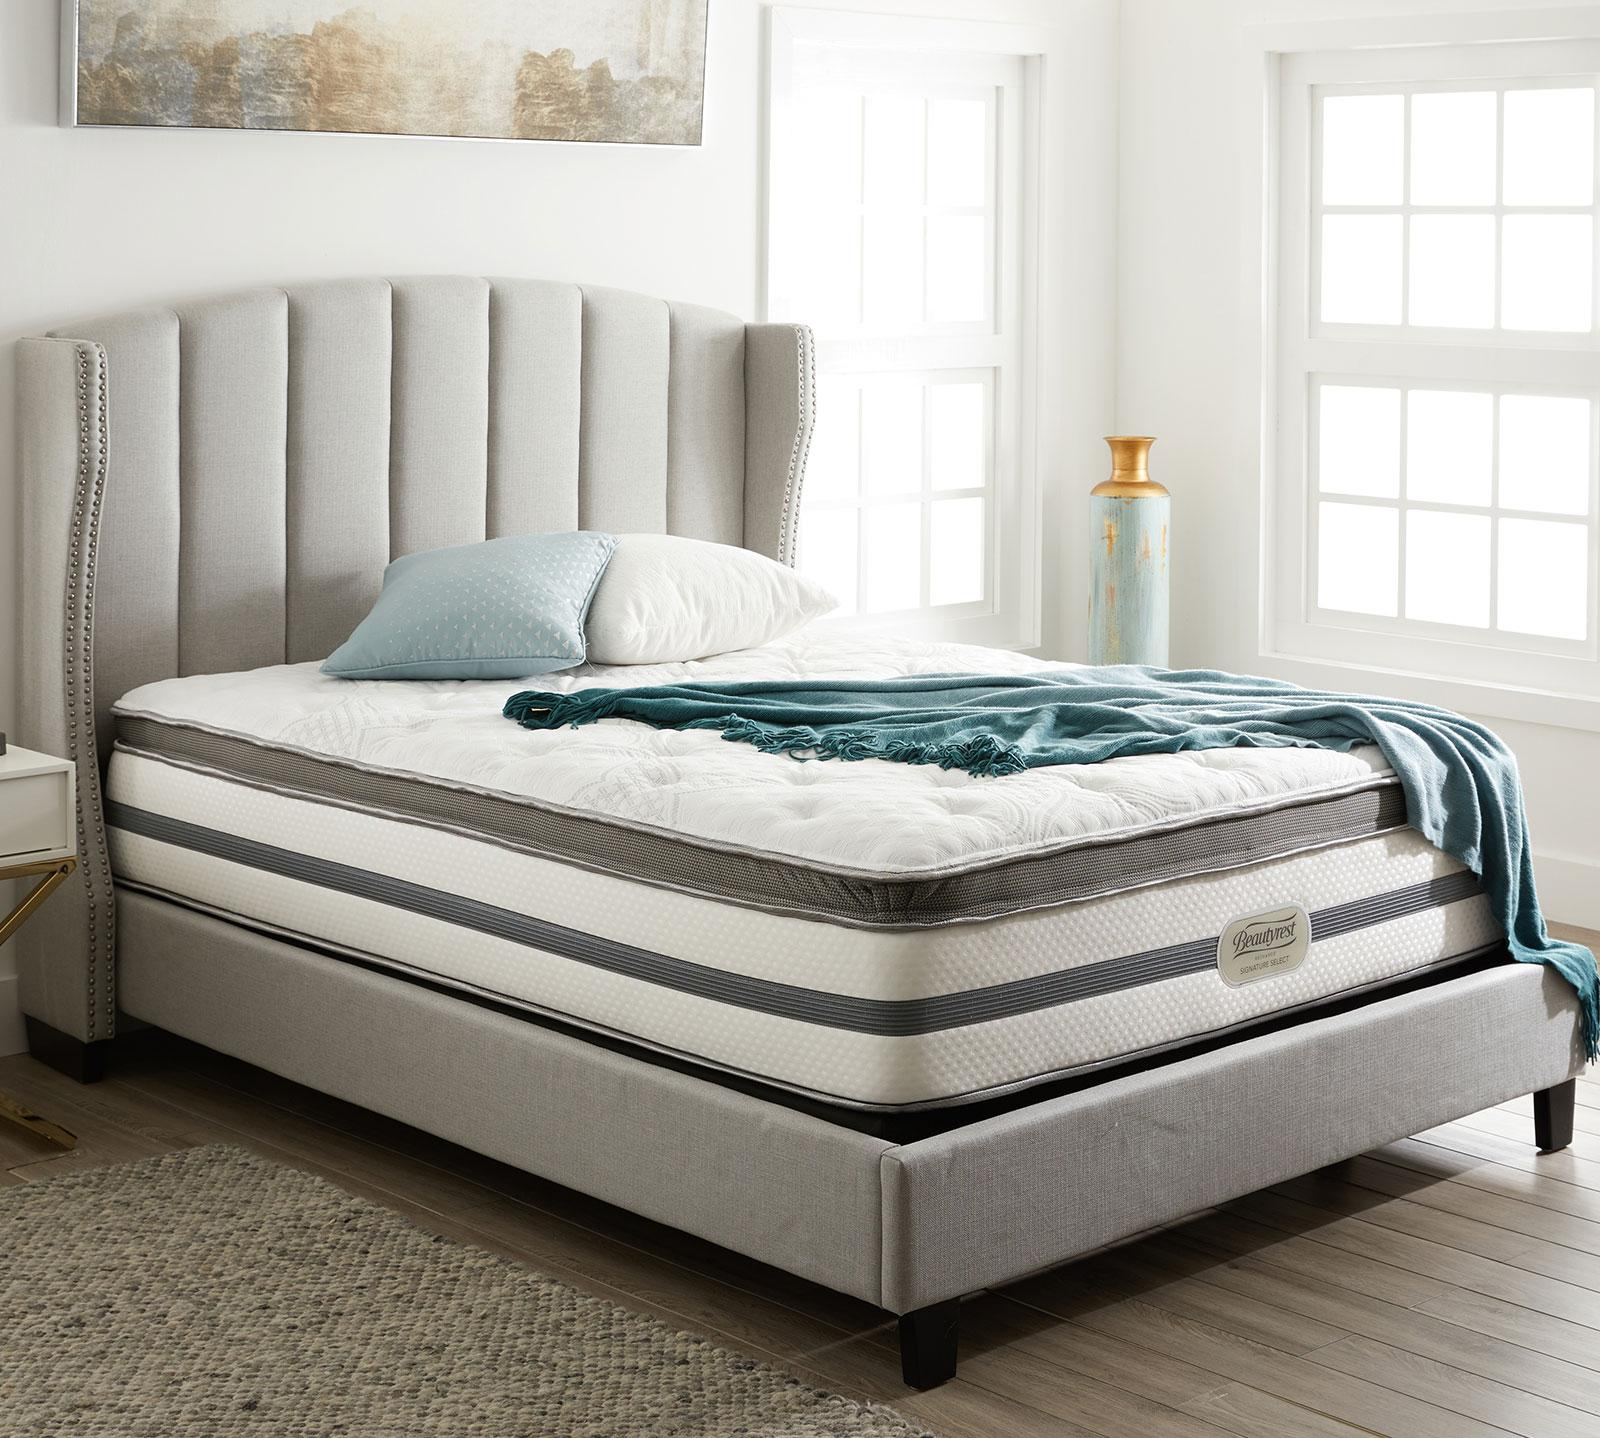 Twin Extra Long Size Mattresses